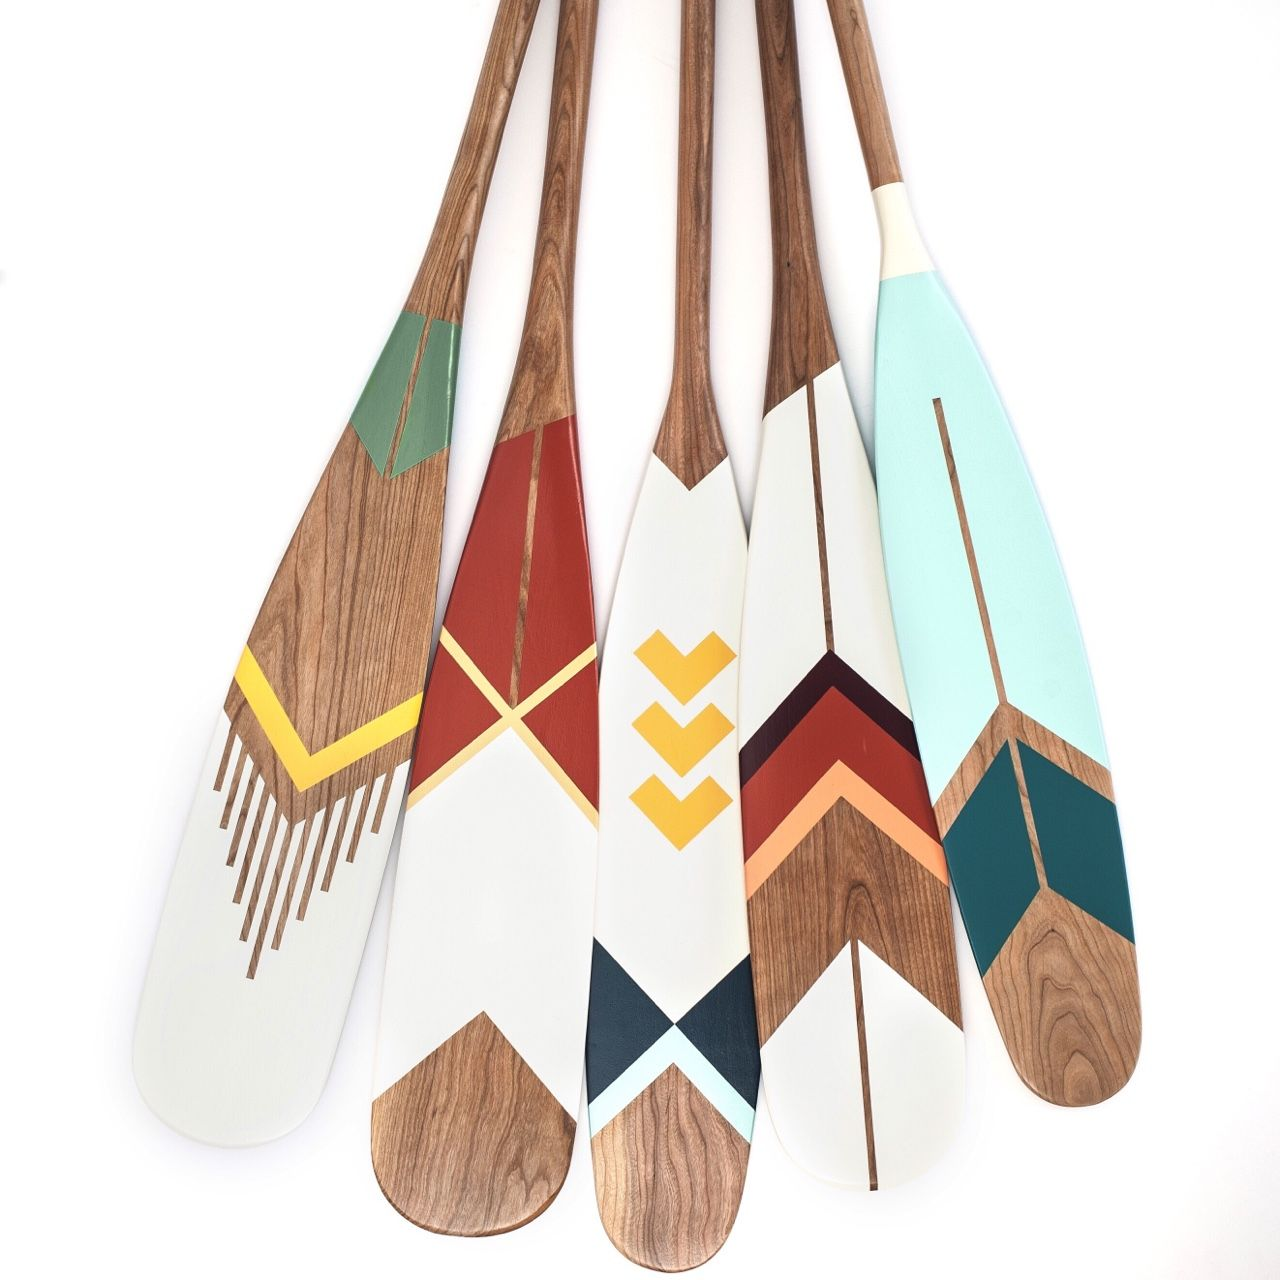 Artisan Painted Canoe Paddles